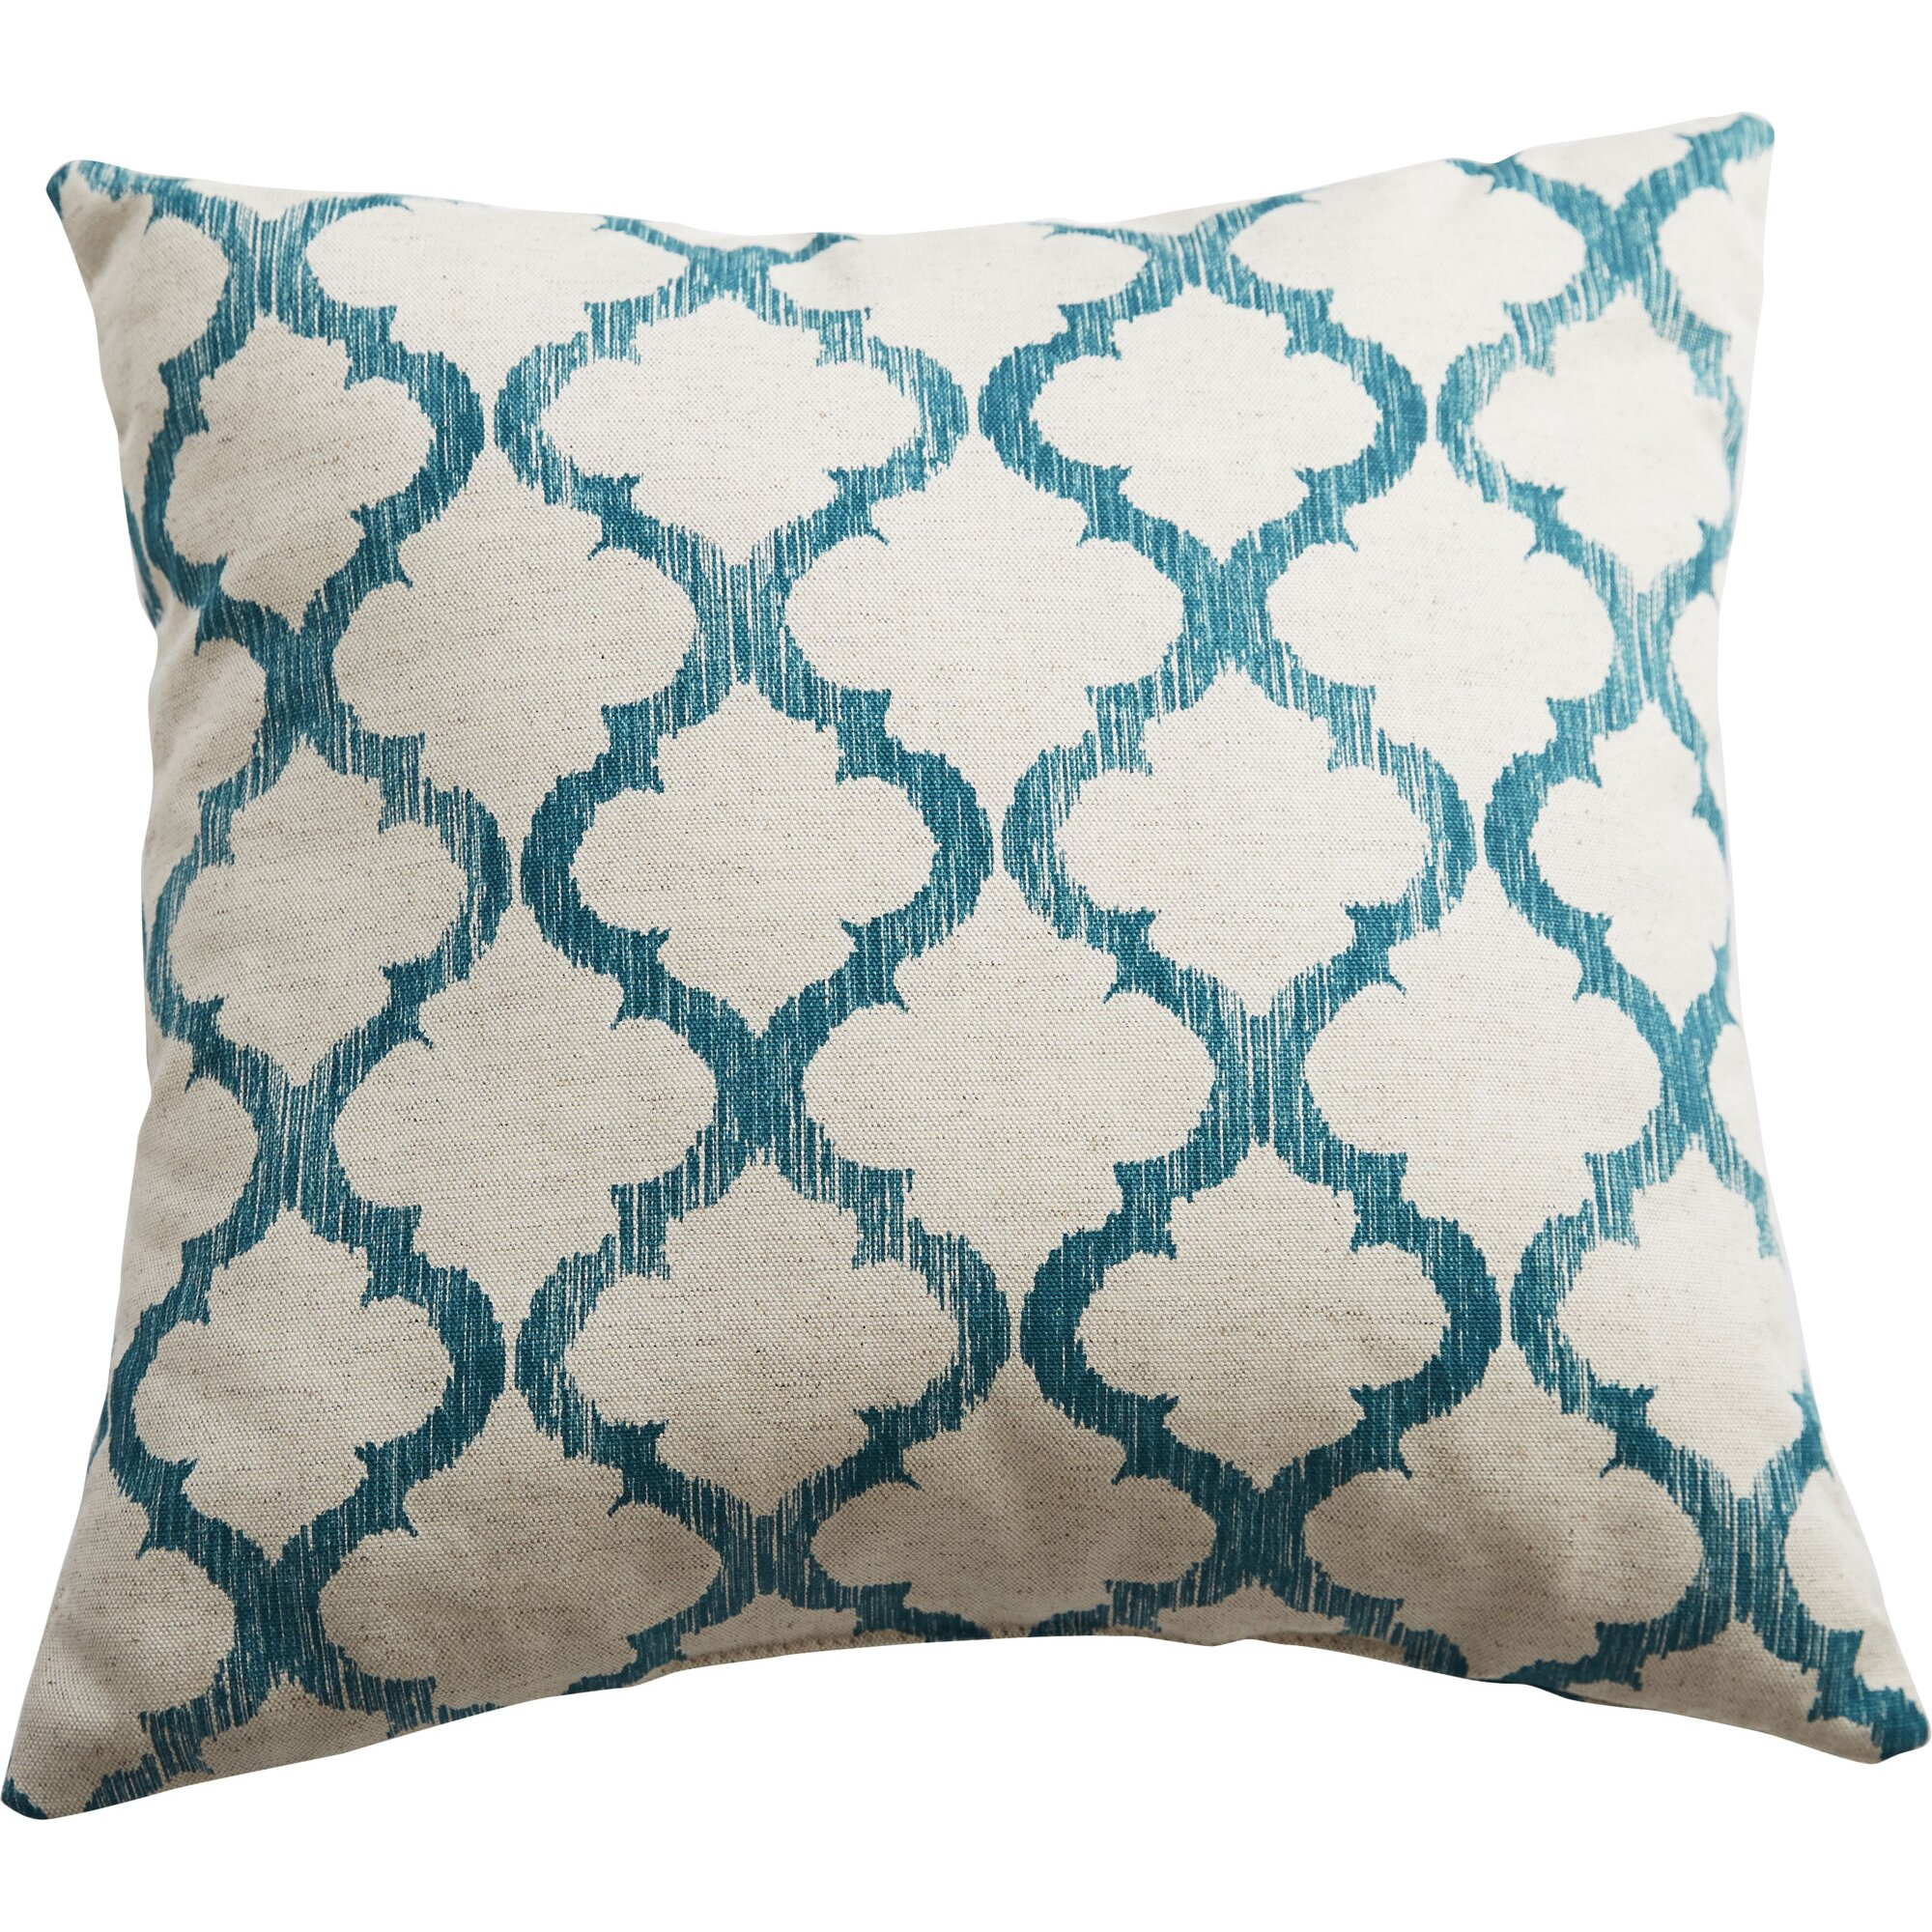 Swan Dye and Printing Linen Throw Pillow & Reviews Wayfair